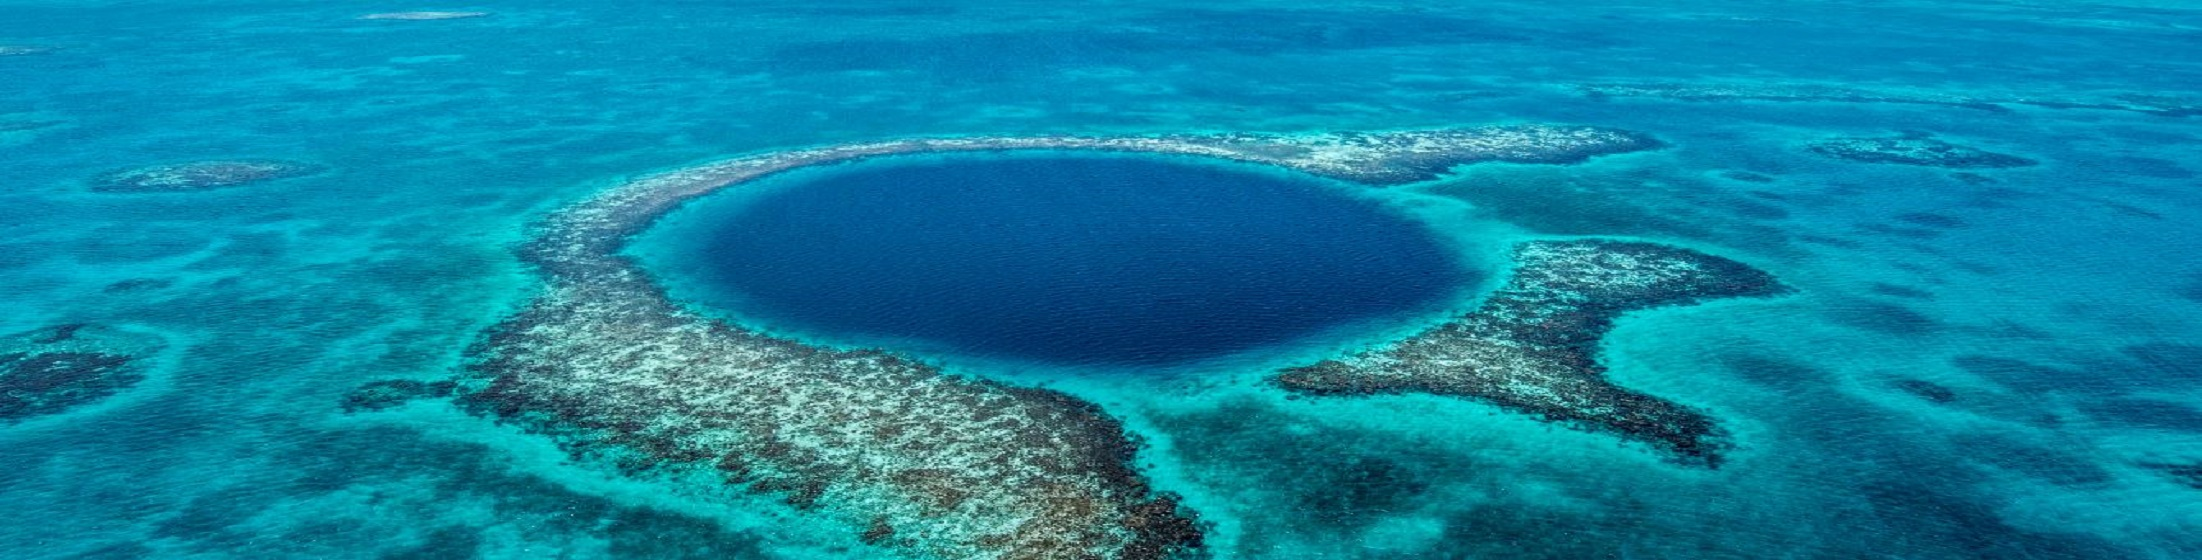 The Great Blue Hole Belize Tourism Board